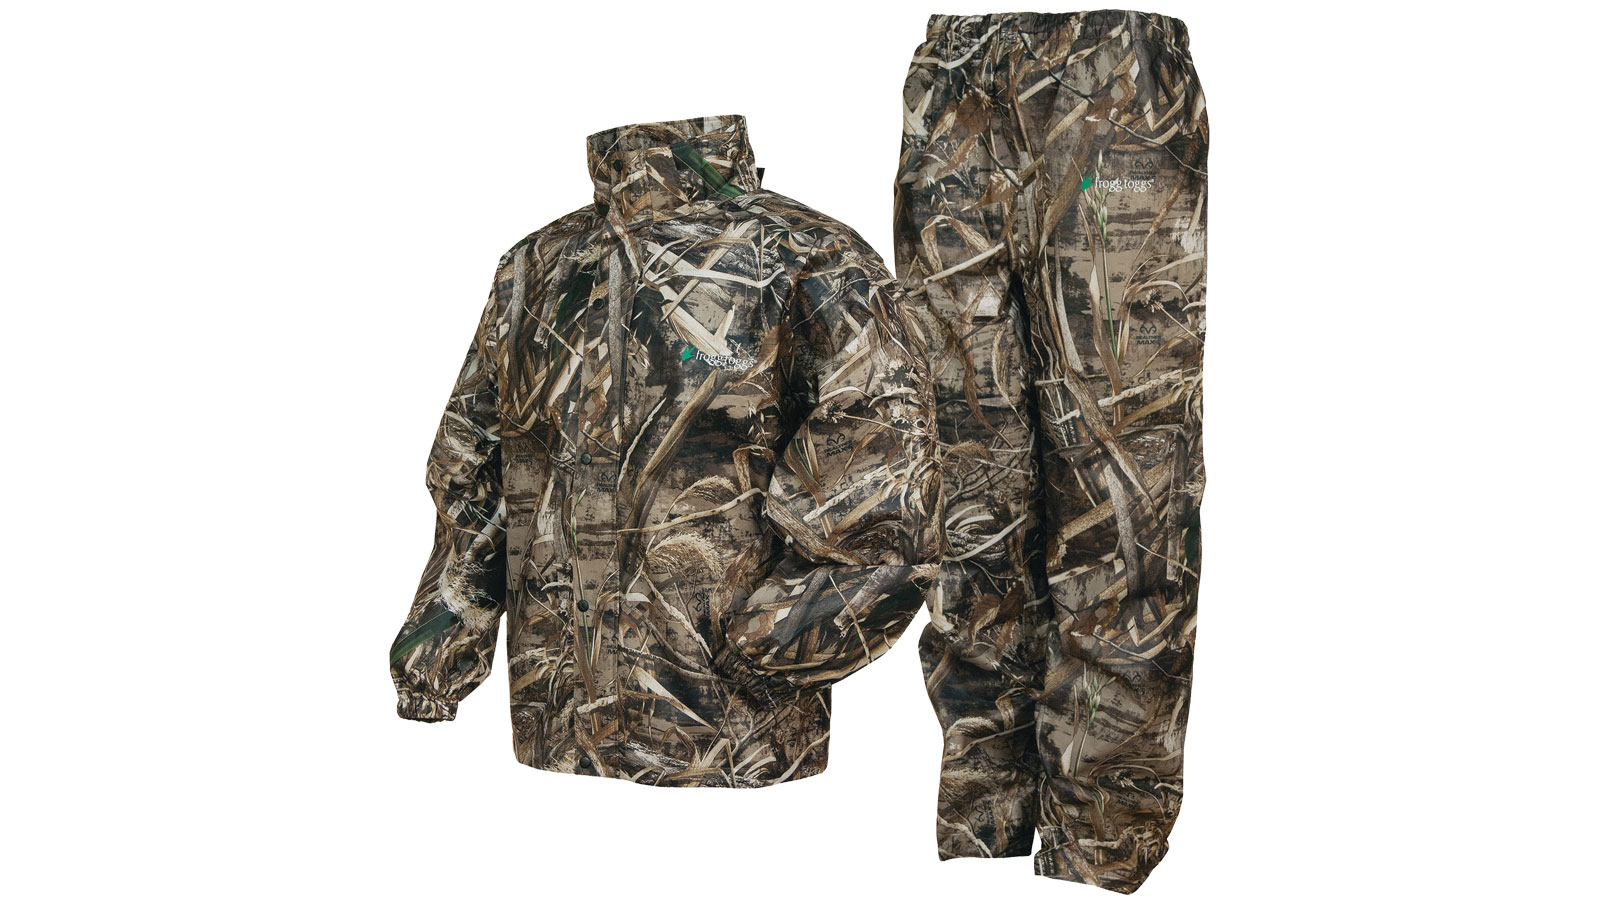 Frogg Toggs All Sports Camo Suit Max 5 Camo Large